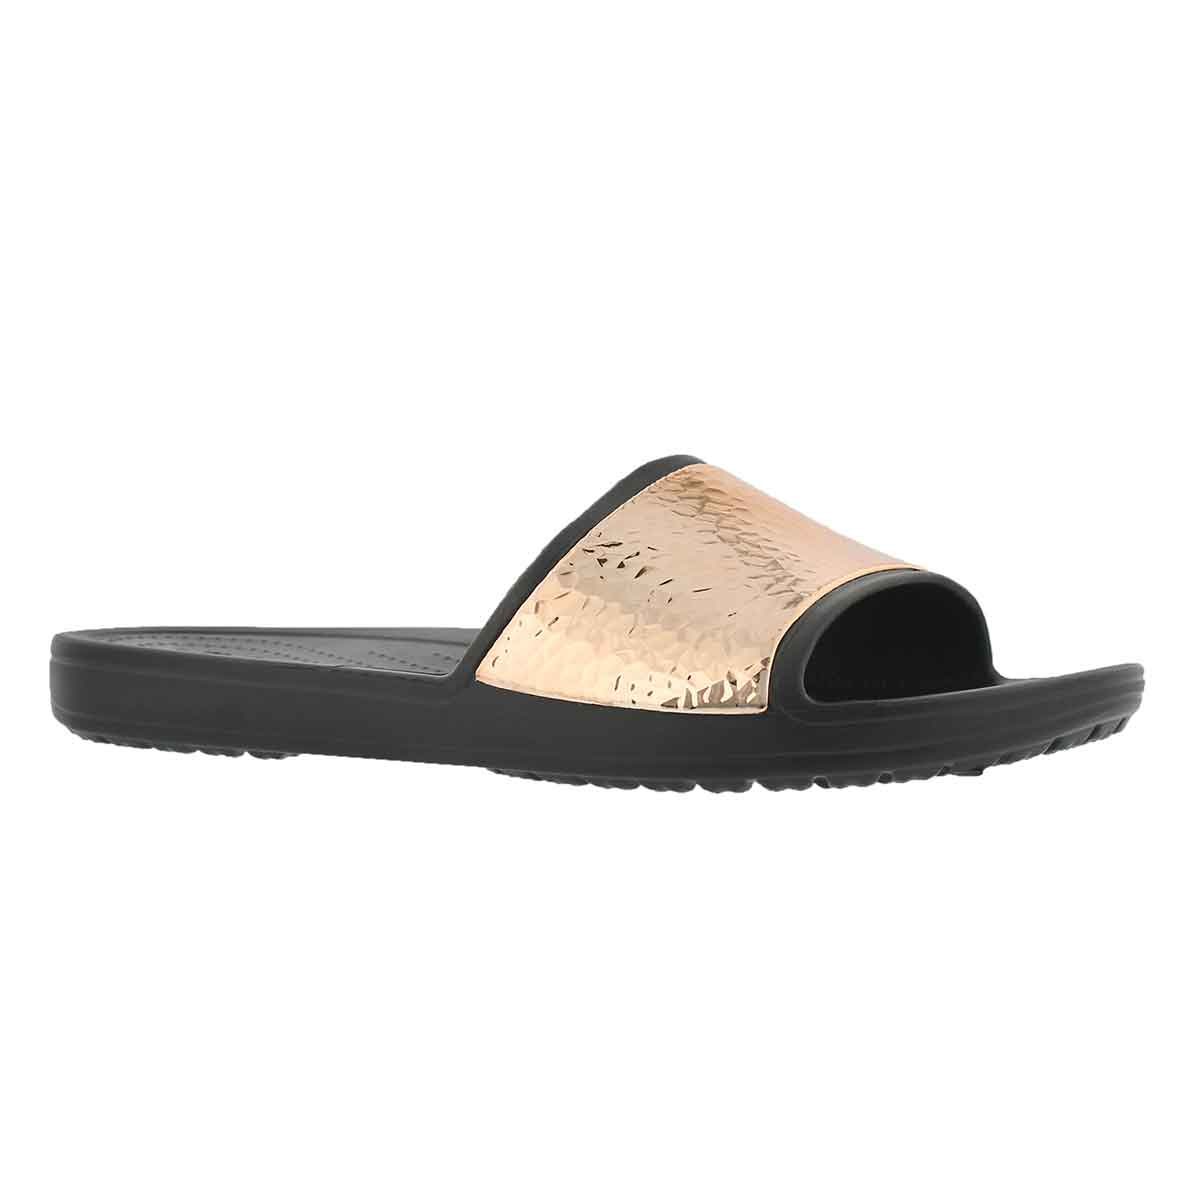 Women's SLOANE HAMMERED black/rose gold sandals